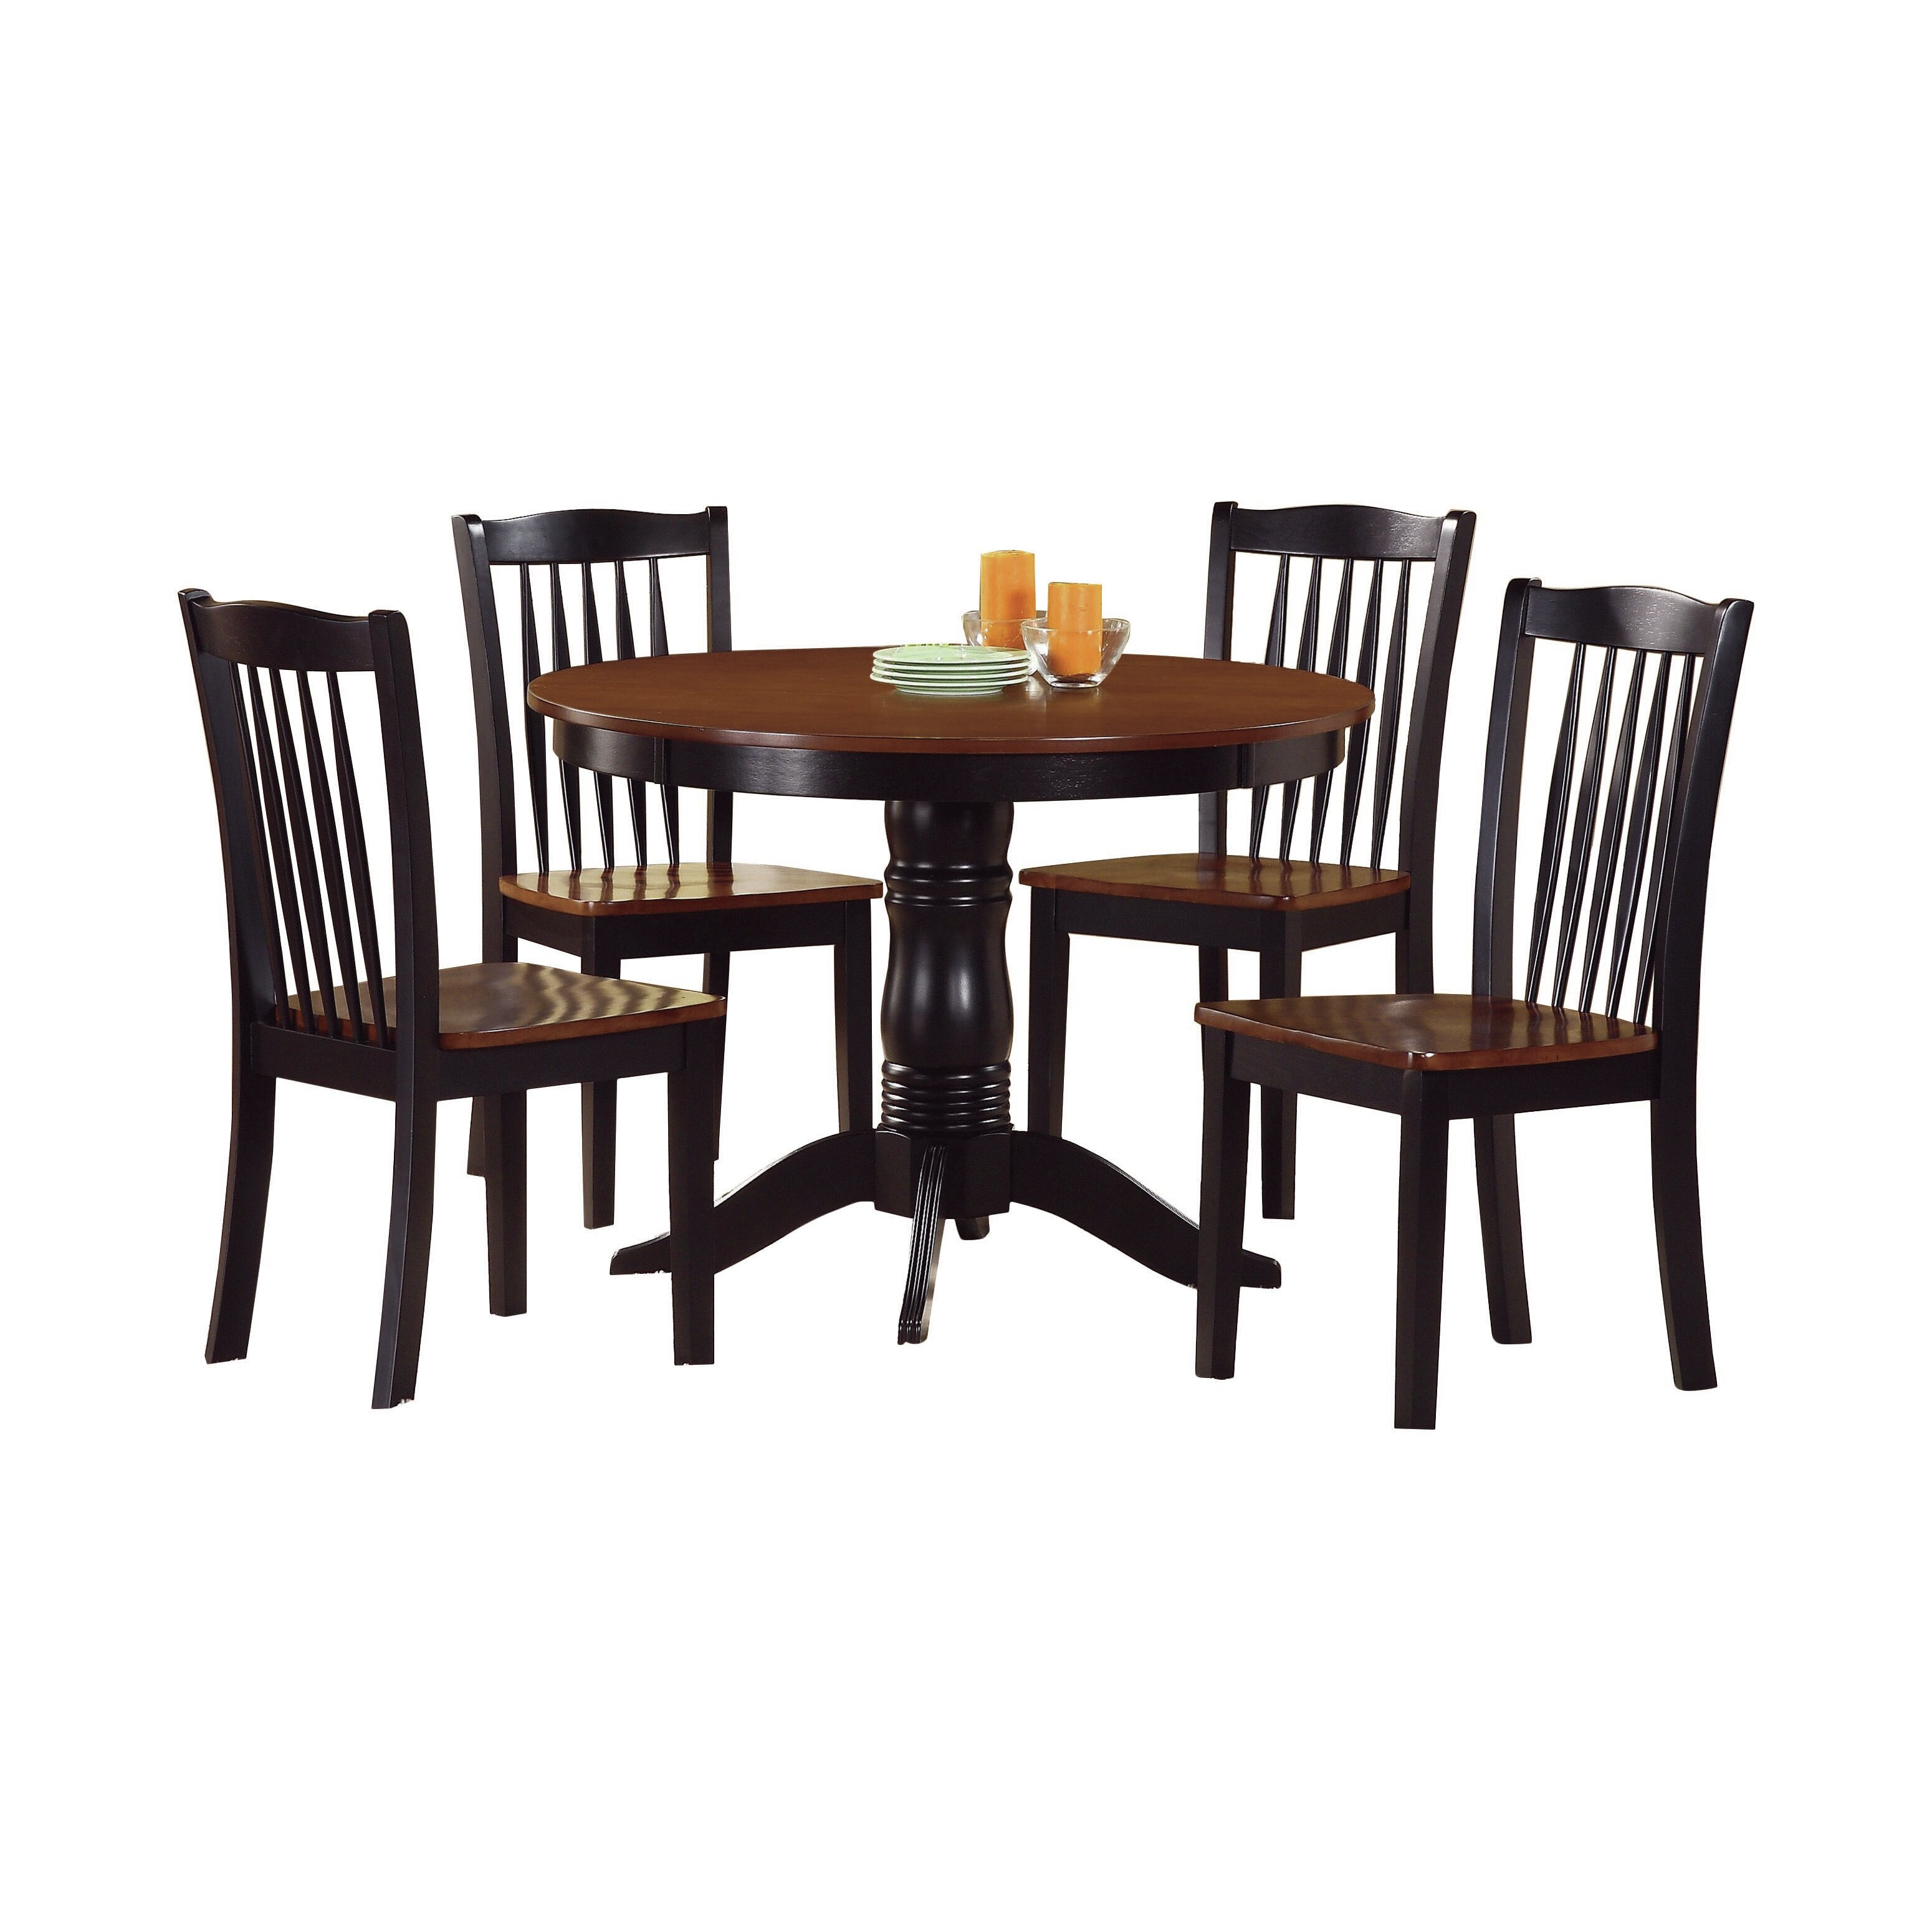 Woodhaven Hill Andover 5 Piece Dining Set & Reviews